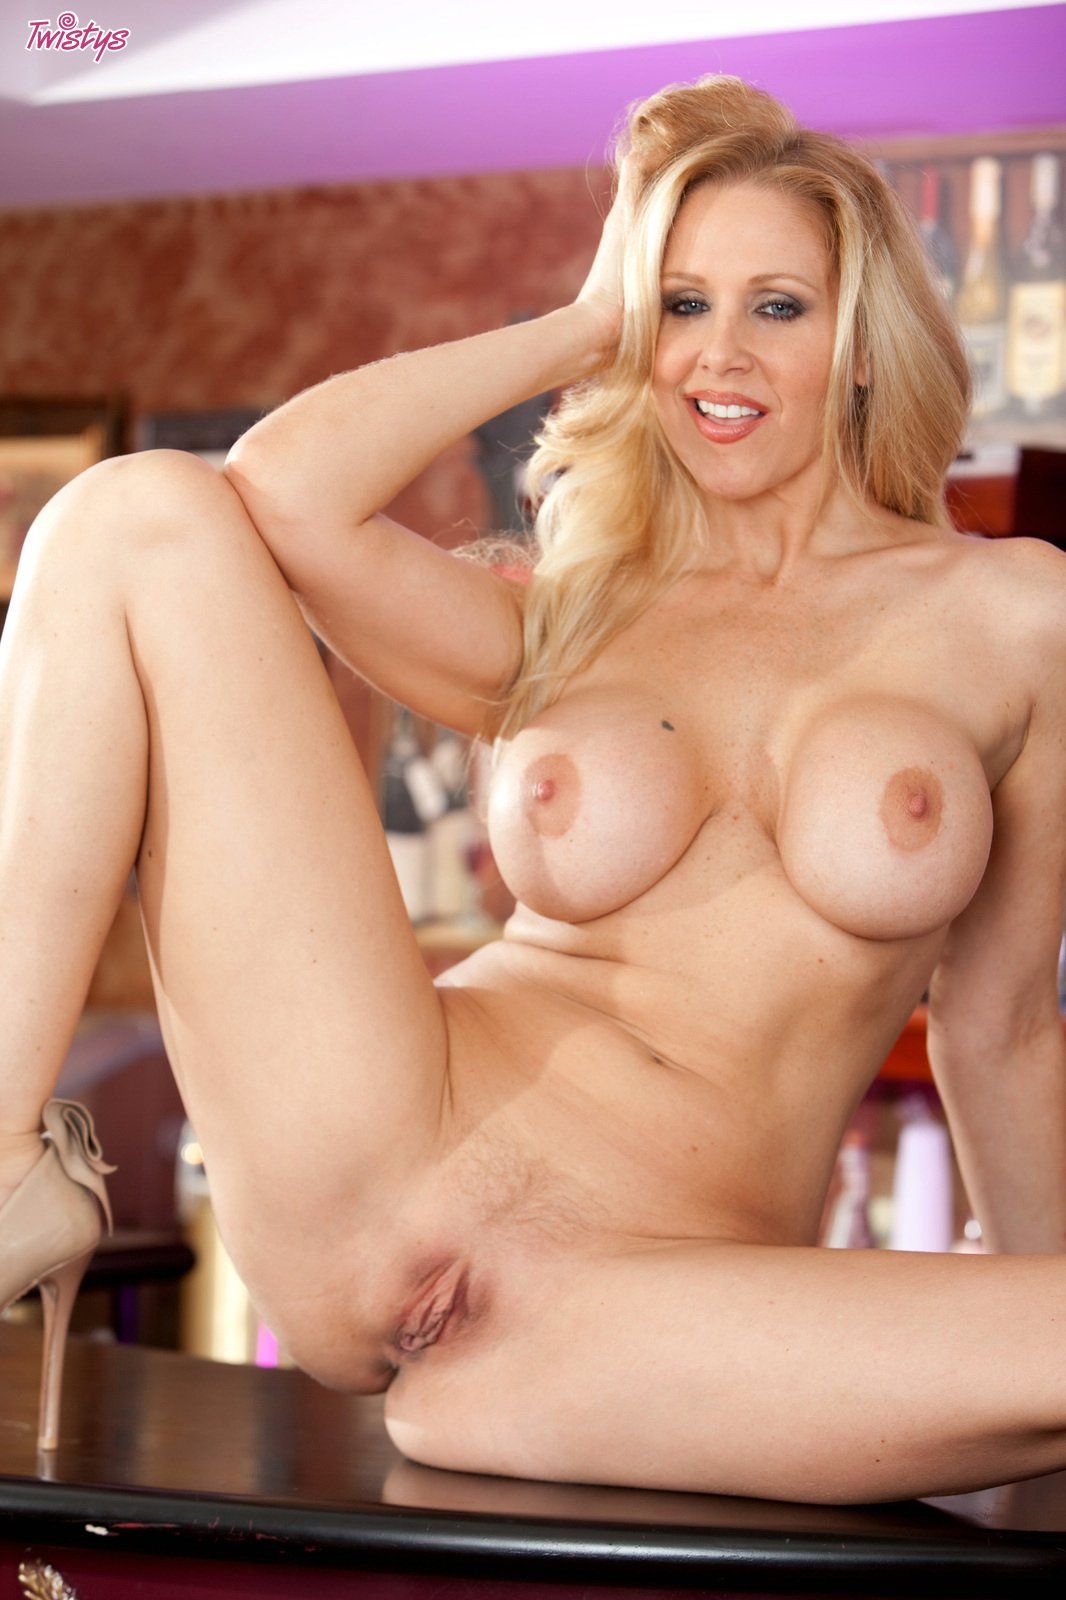 Julia ann hot nude